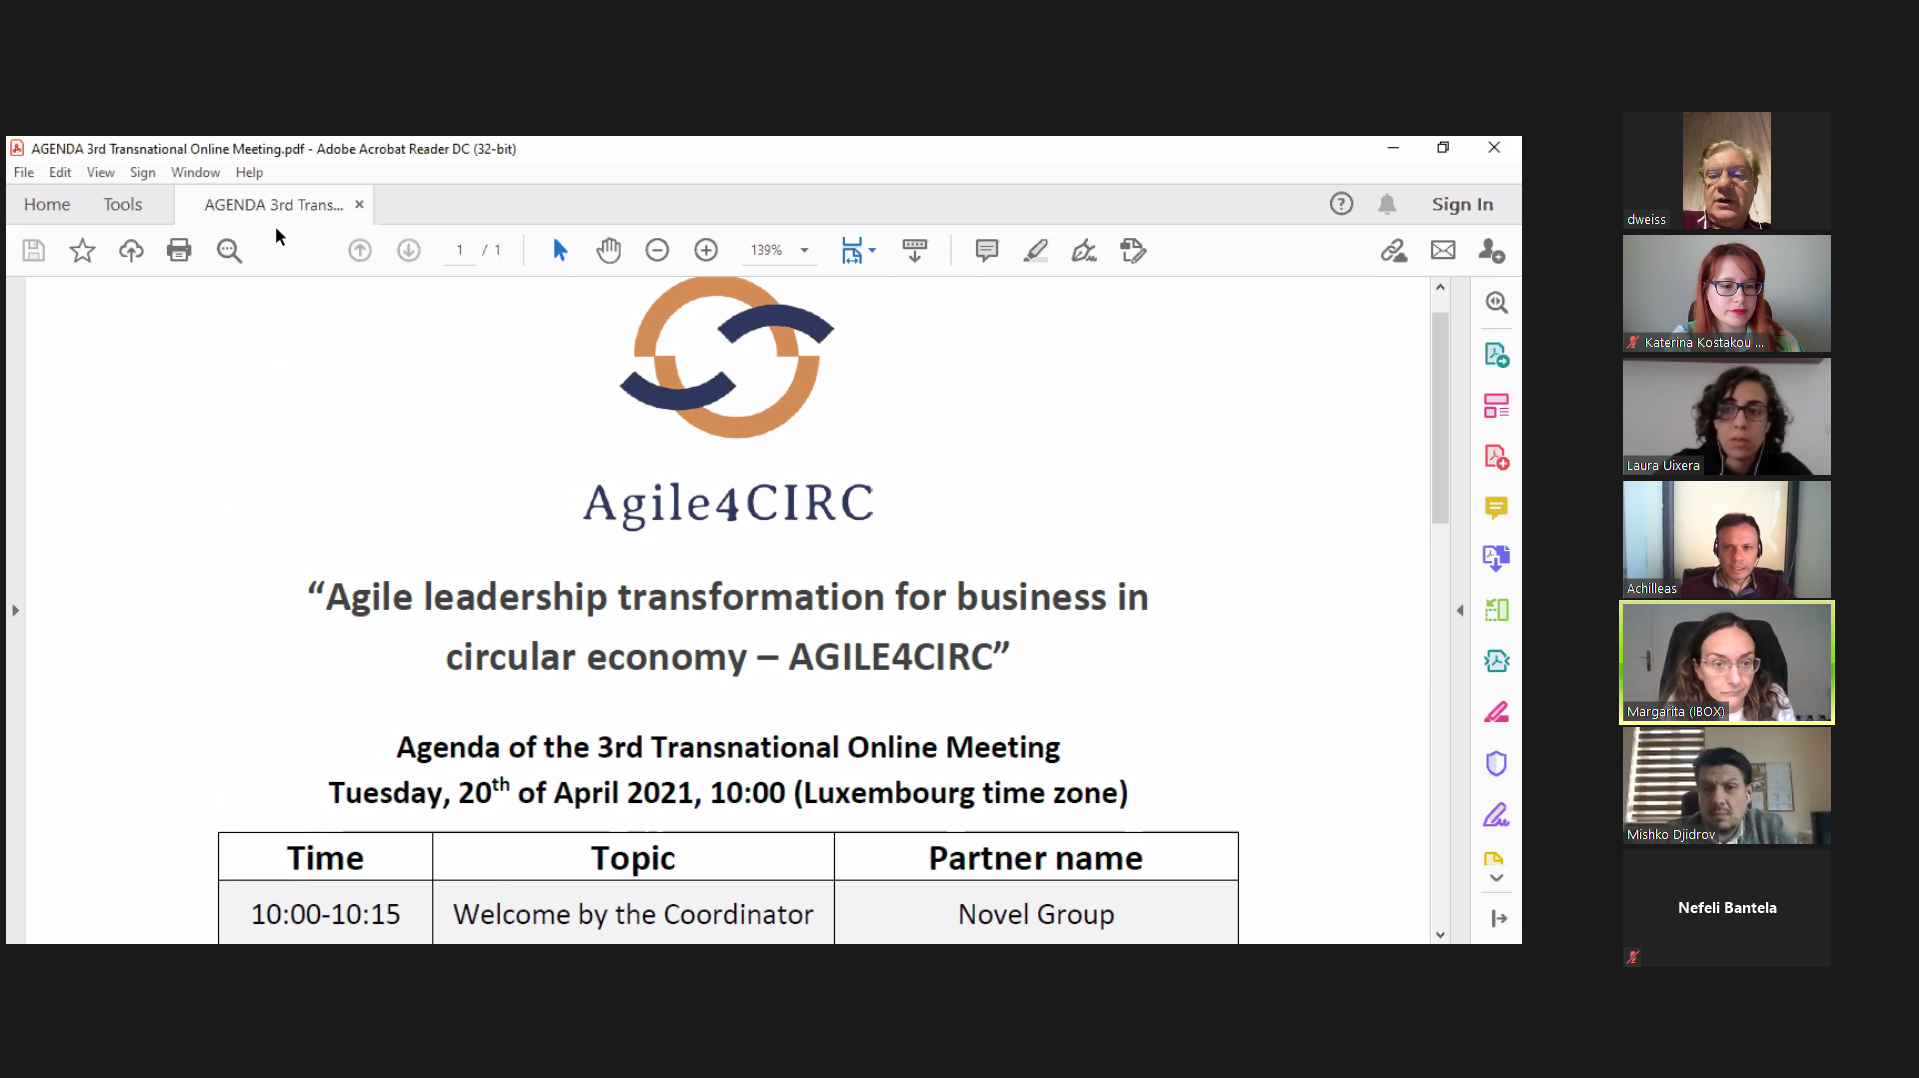 Third transnational meeting for the partners of the Agile4CIRC project!